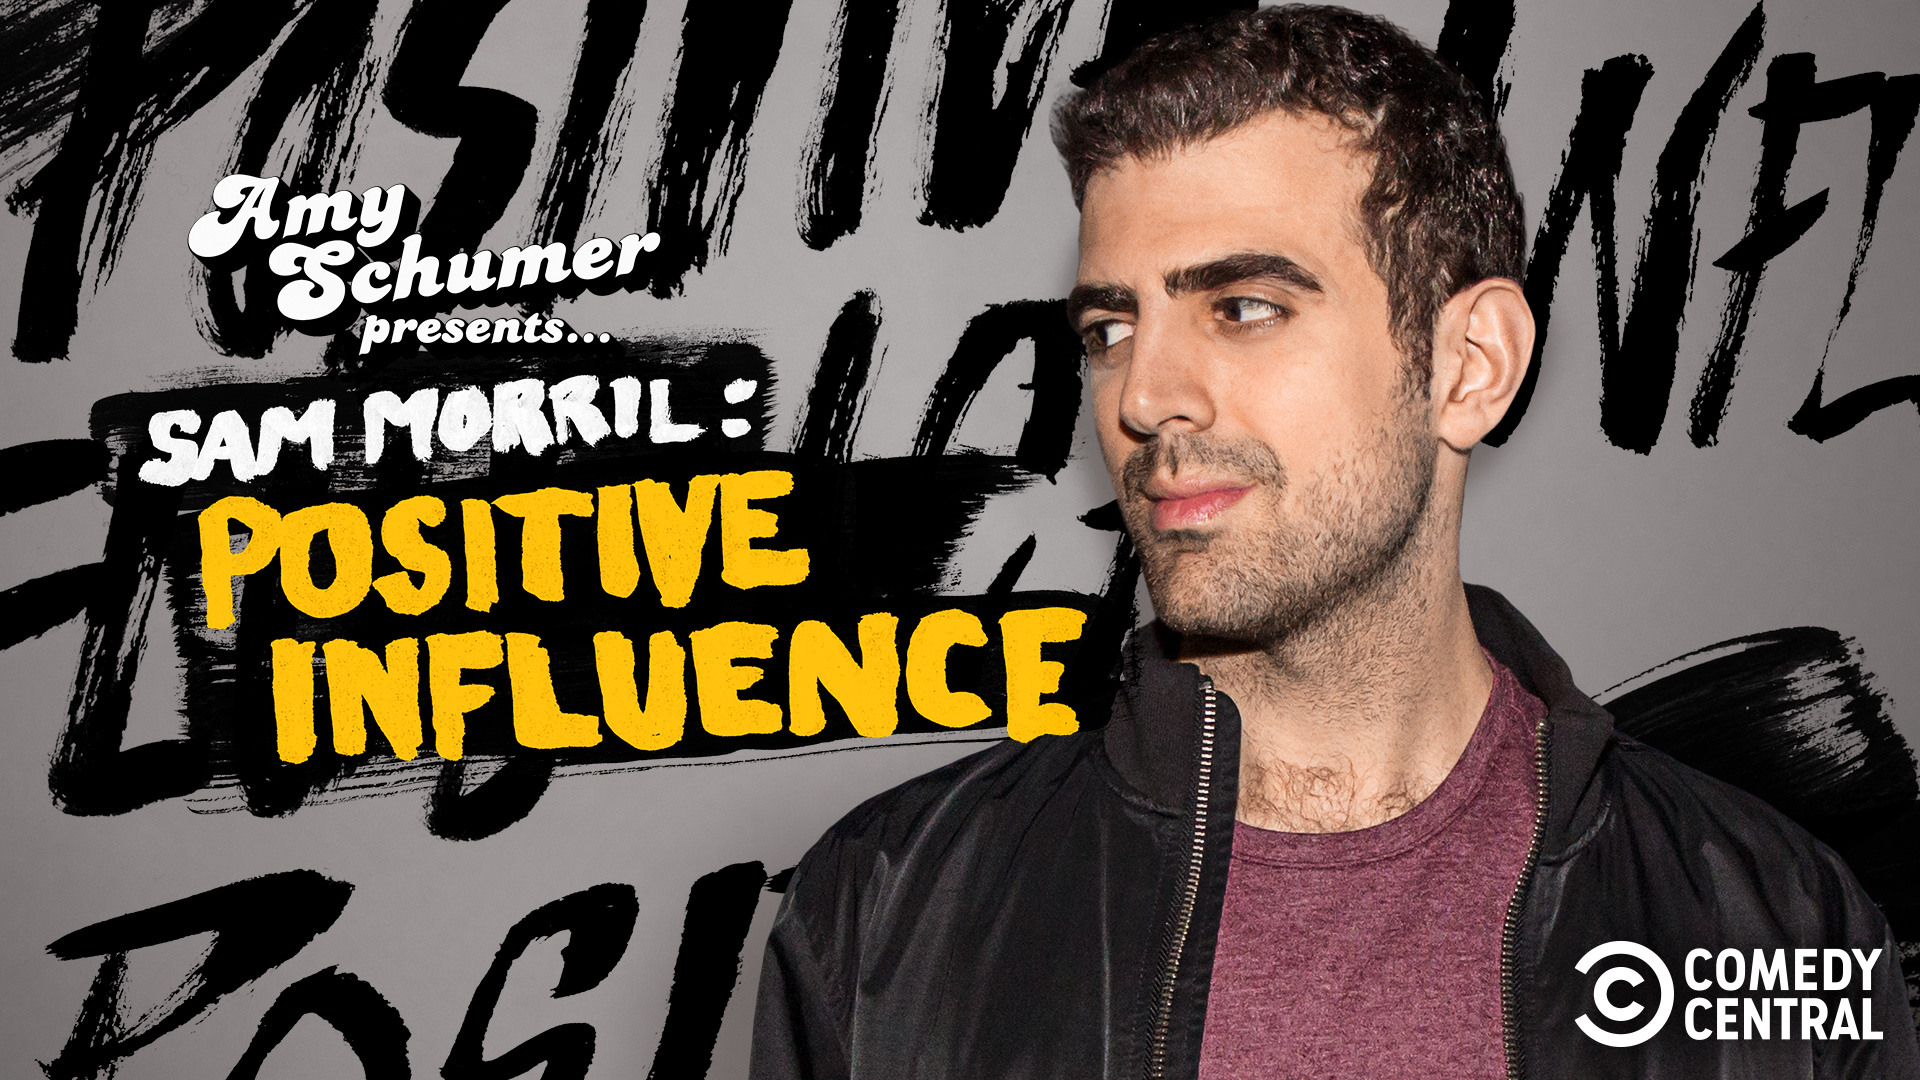 Amy Schumer Presents Sam Morril: Positive Influence (Explicit)